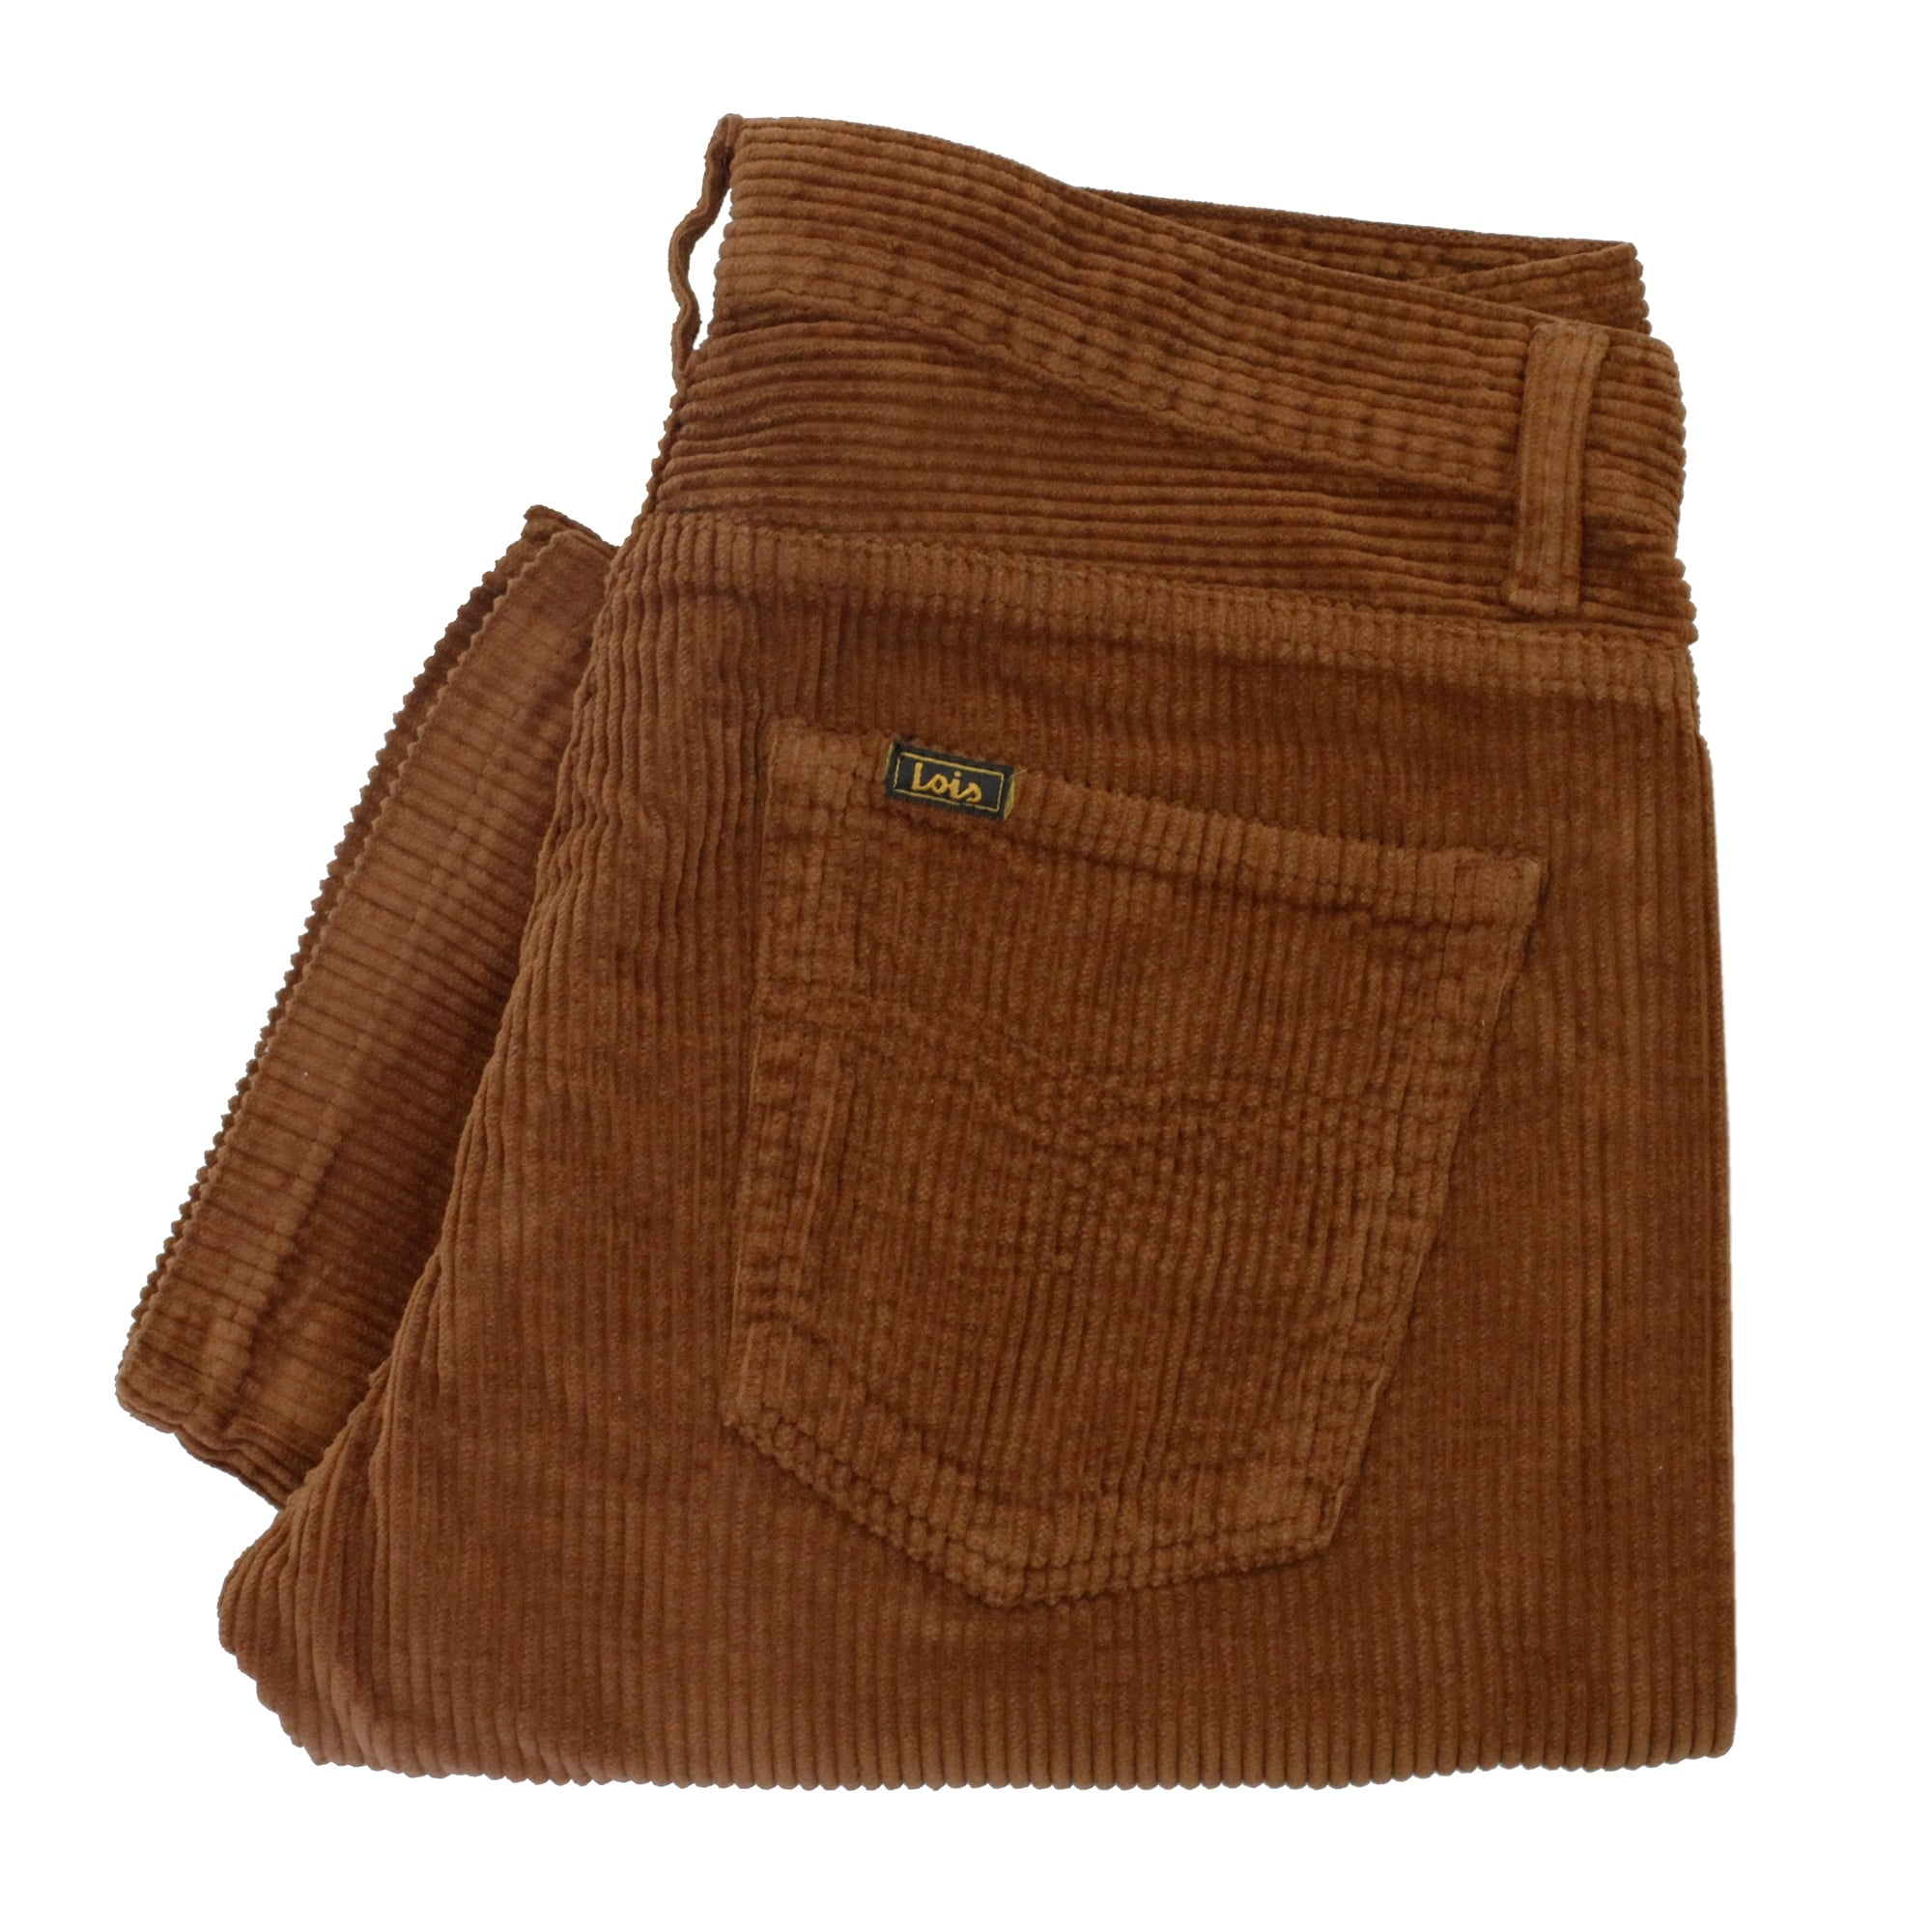 choose authentic half price best loved Lois Jeans Lois Jeans New Dallas Jumbo Brown Corduroy Trousers 199